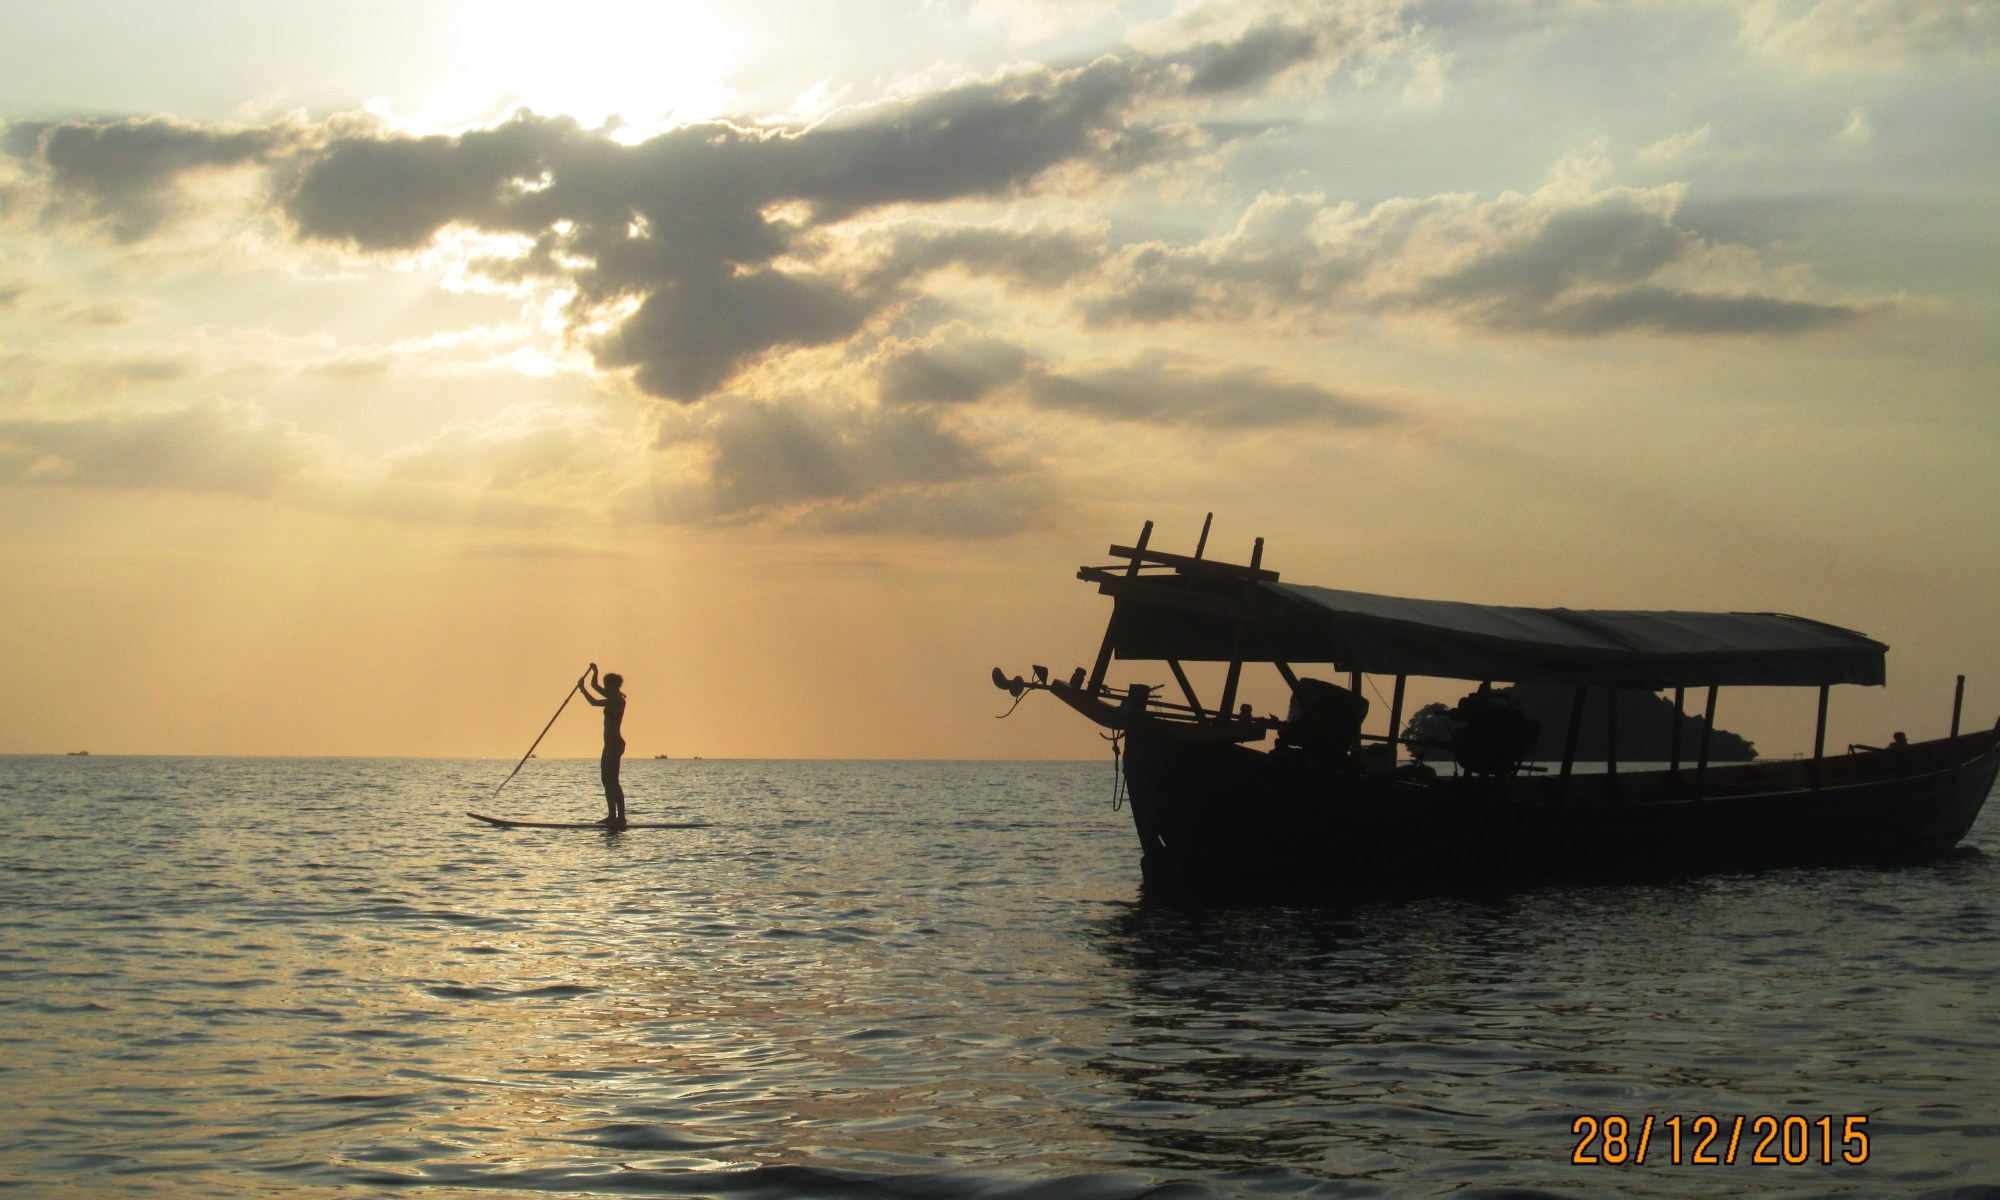 Enroll with TEFL International Cambodia and experience the sunsets in Koh Kong.